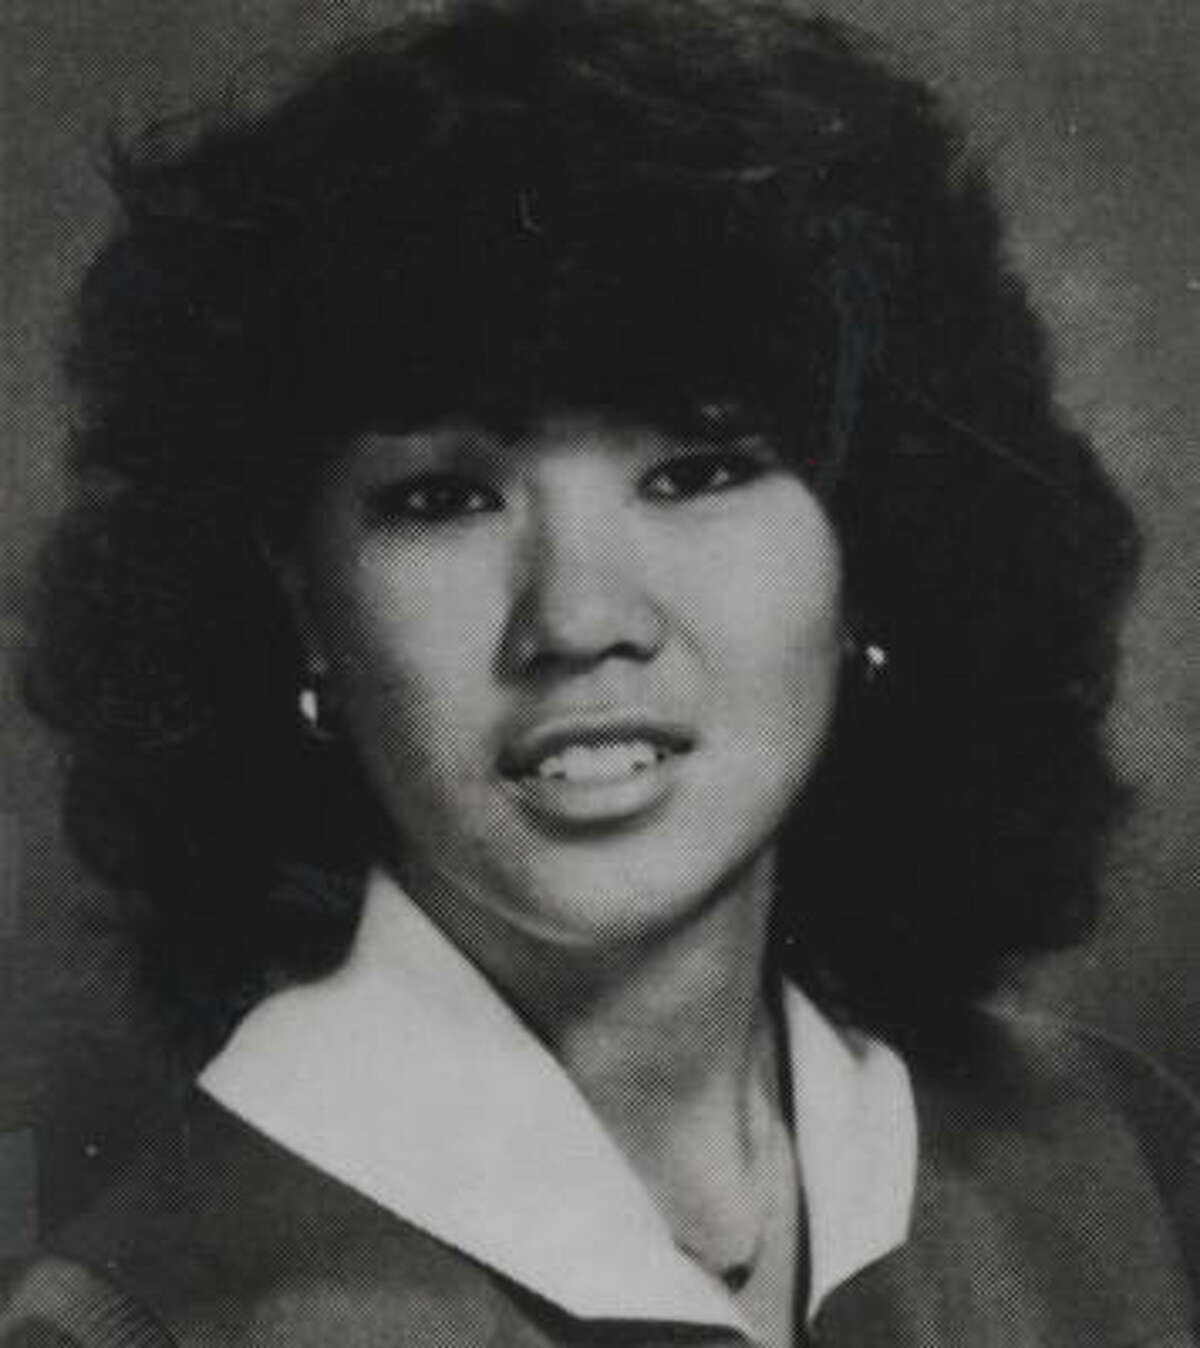 Tracy Gee was killed at age 22.